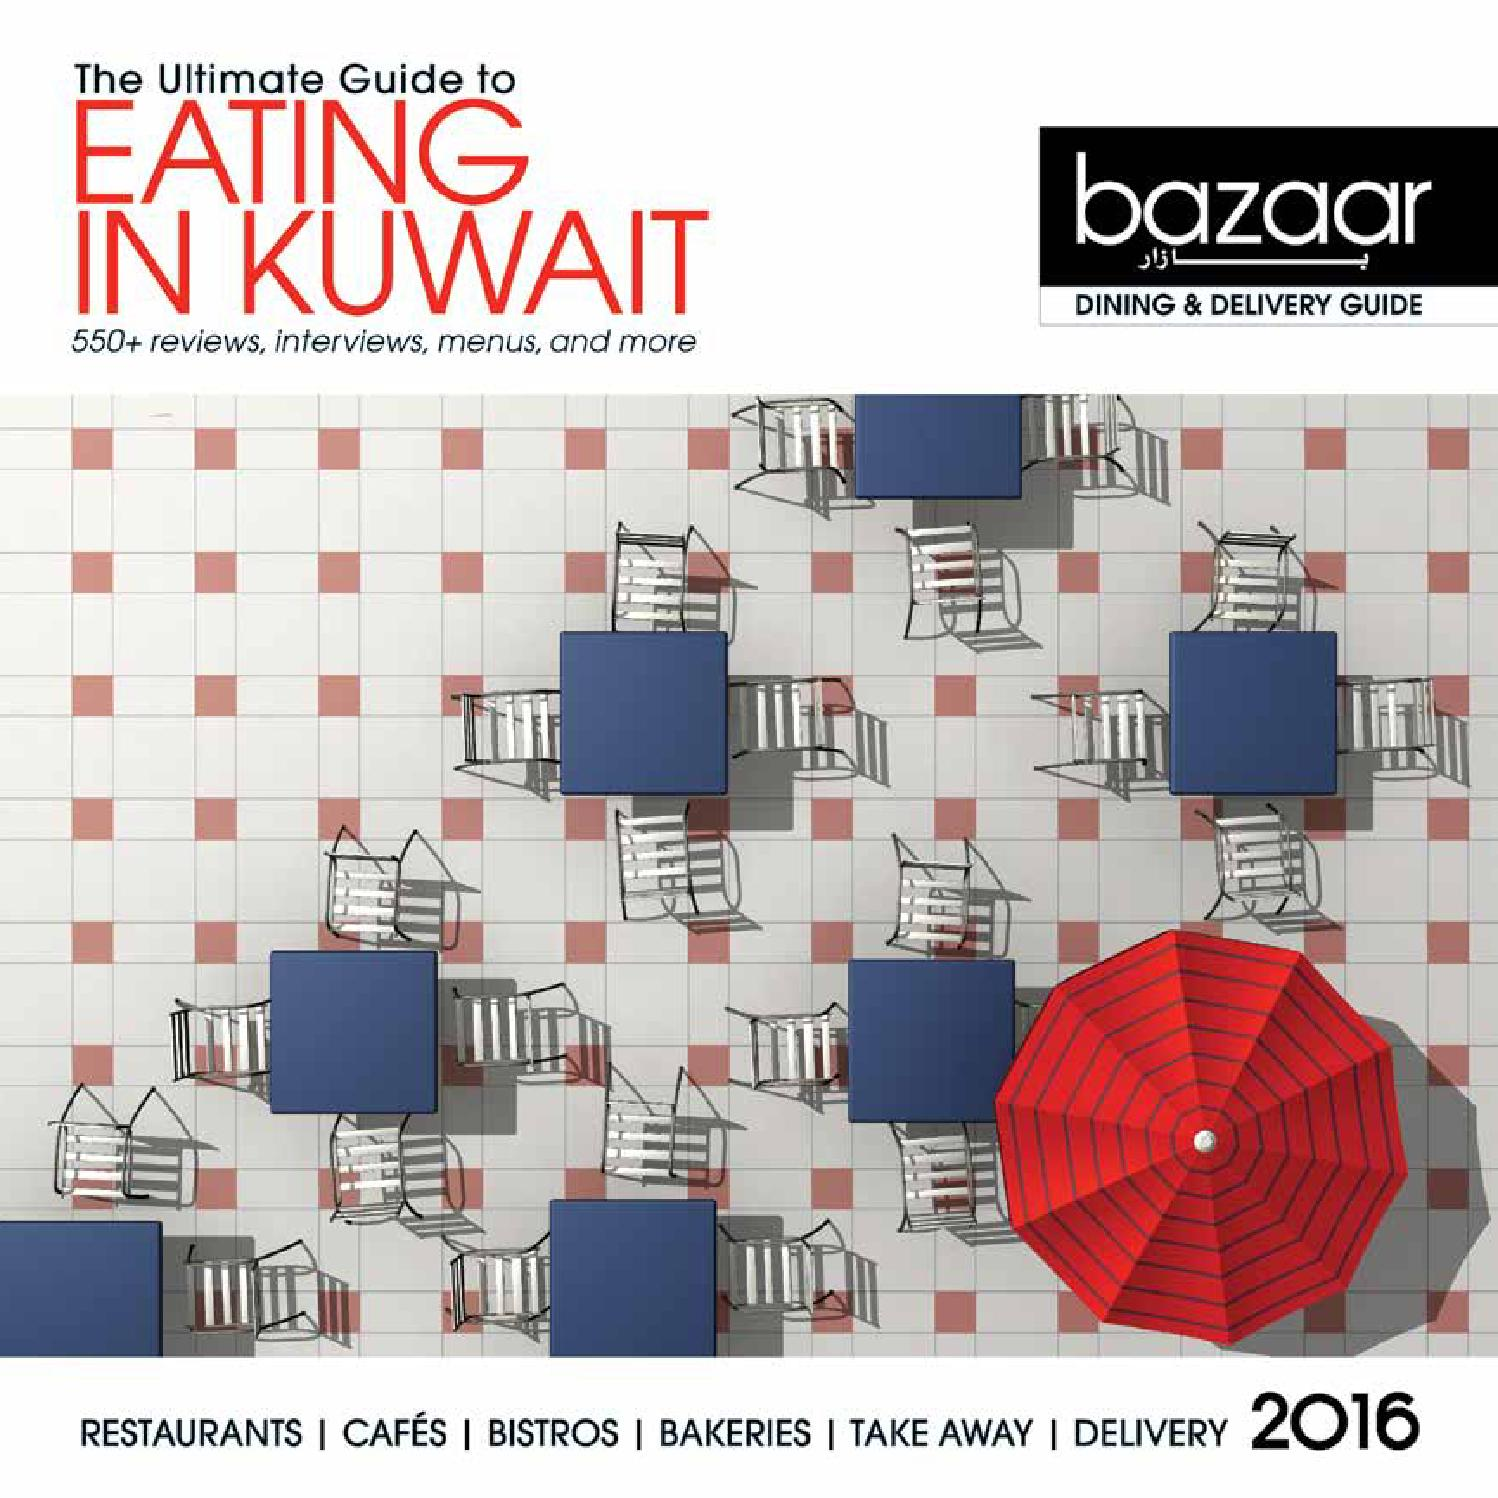 Cucina Restaurant Kuwait Menu Bazaar Dining And Delivery Guide 2016